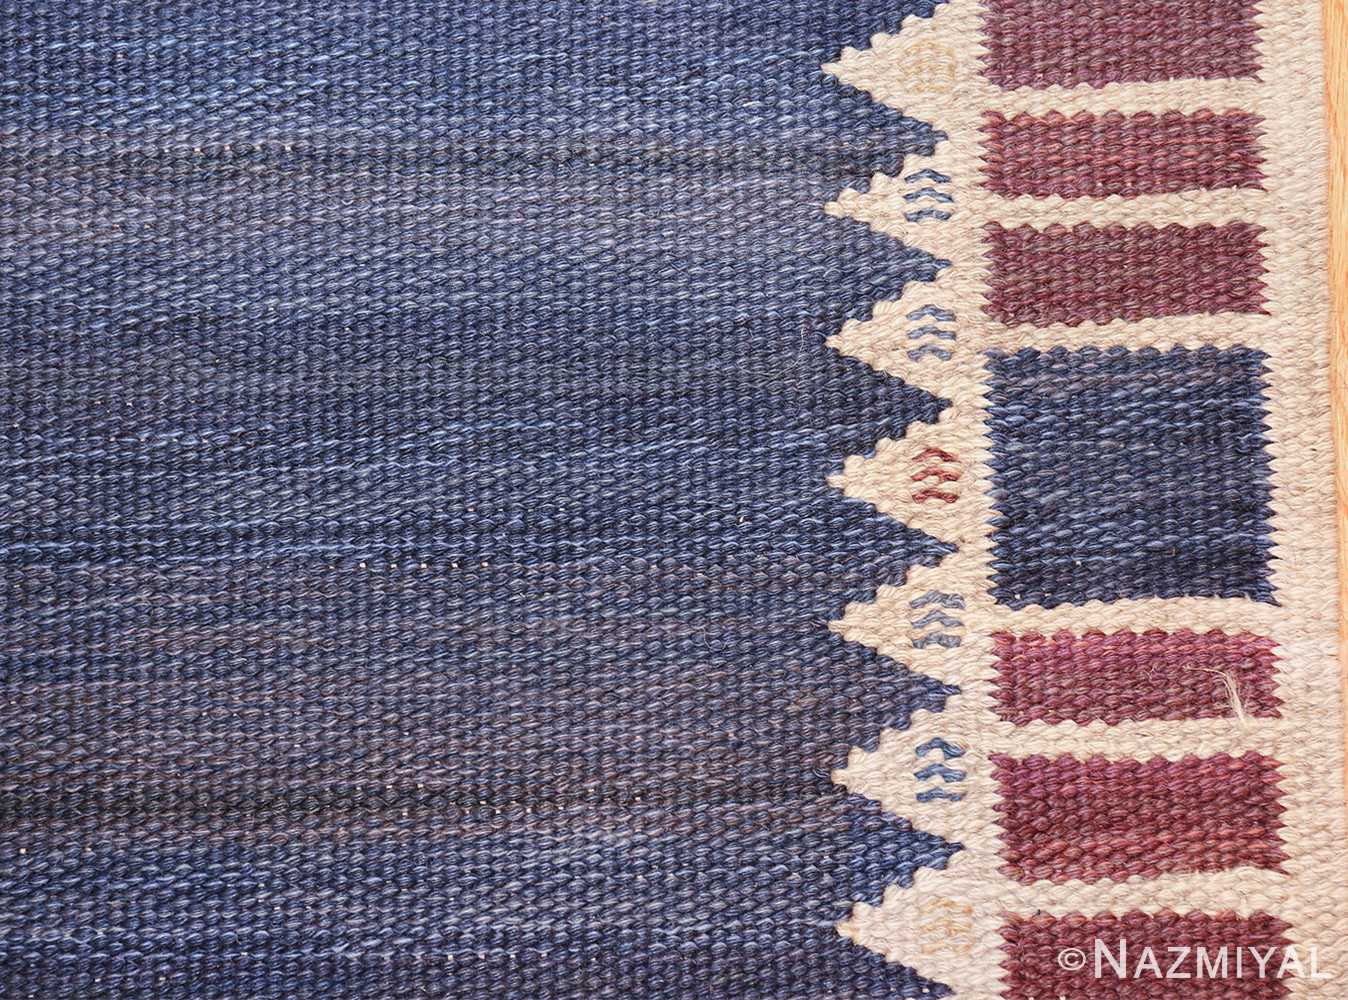 vintage geometric scandinavian kilim rug by barbro nilsson 49572 border Nazmiyal